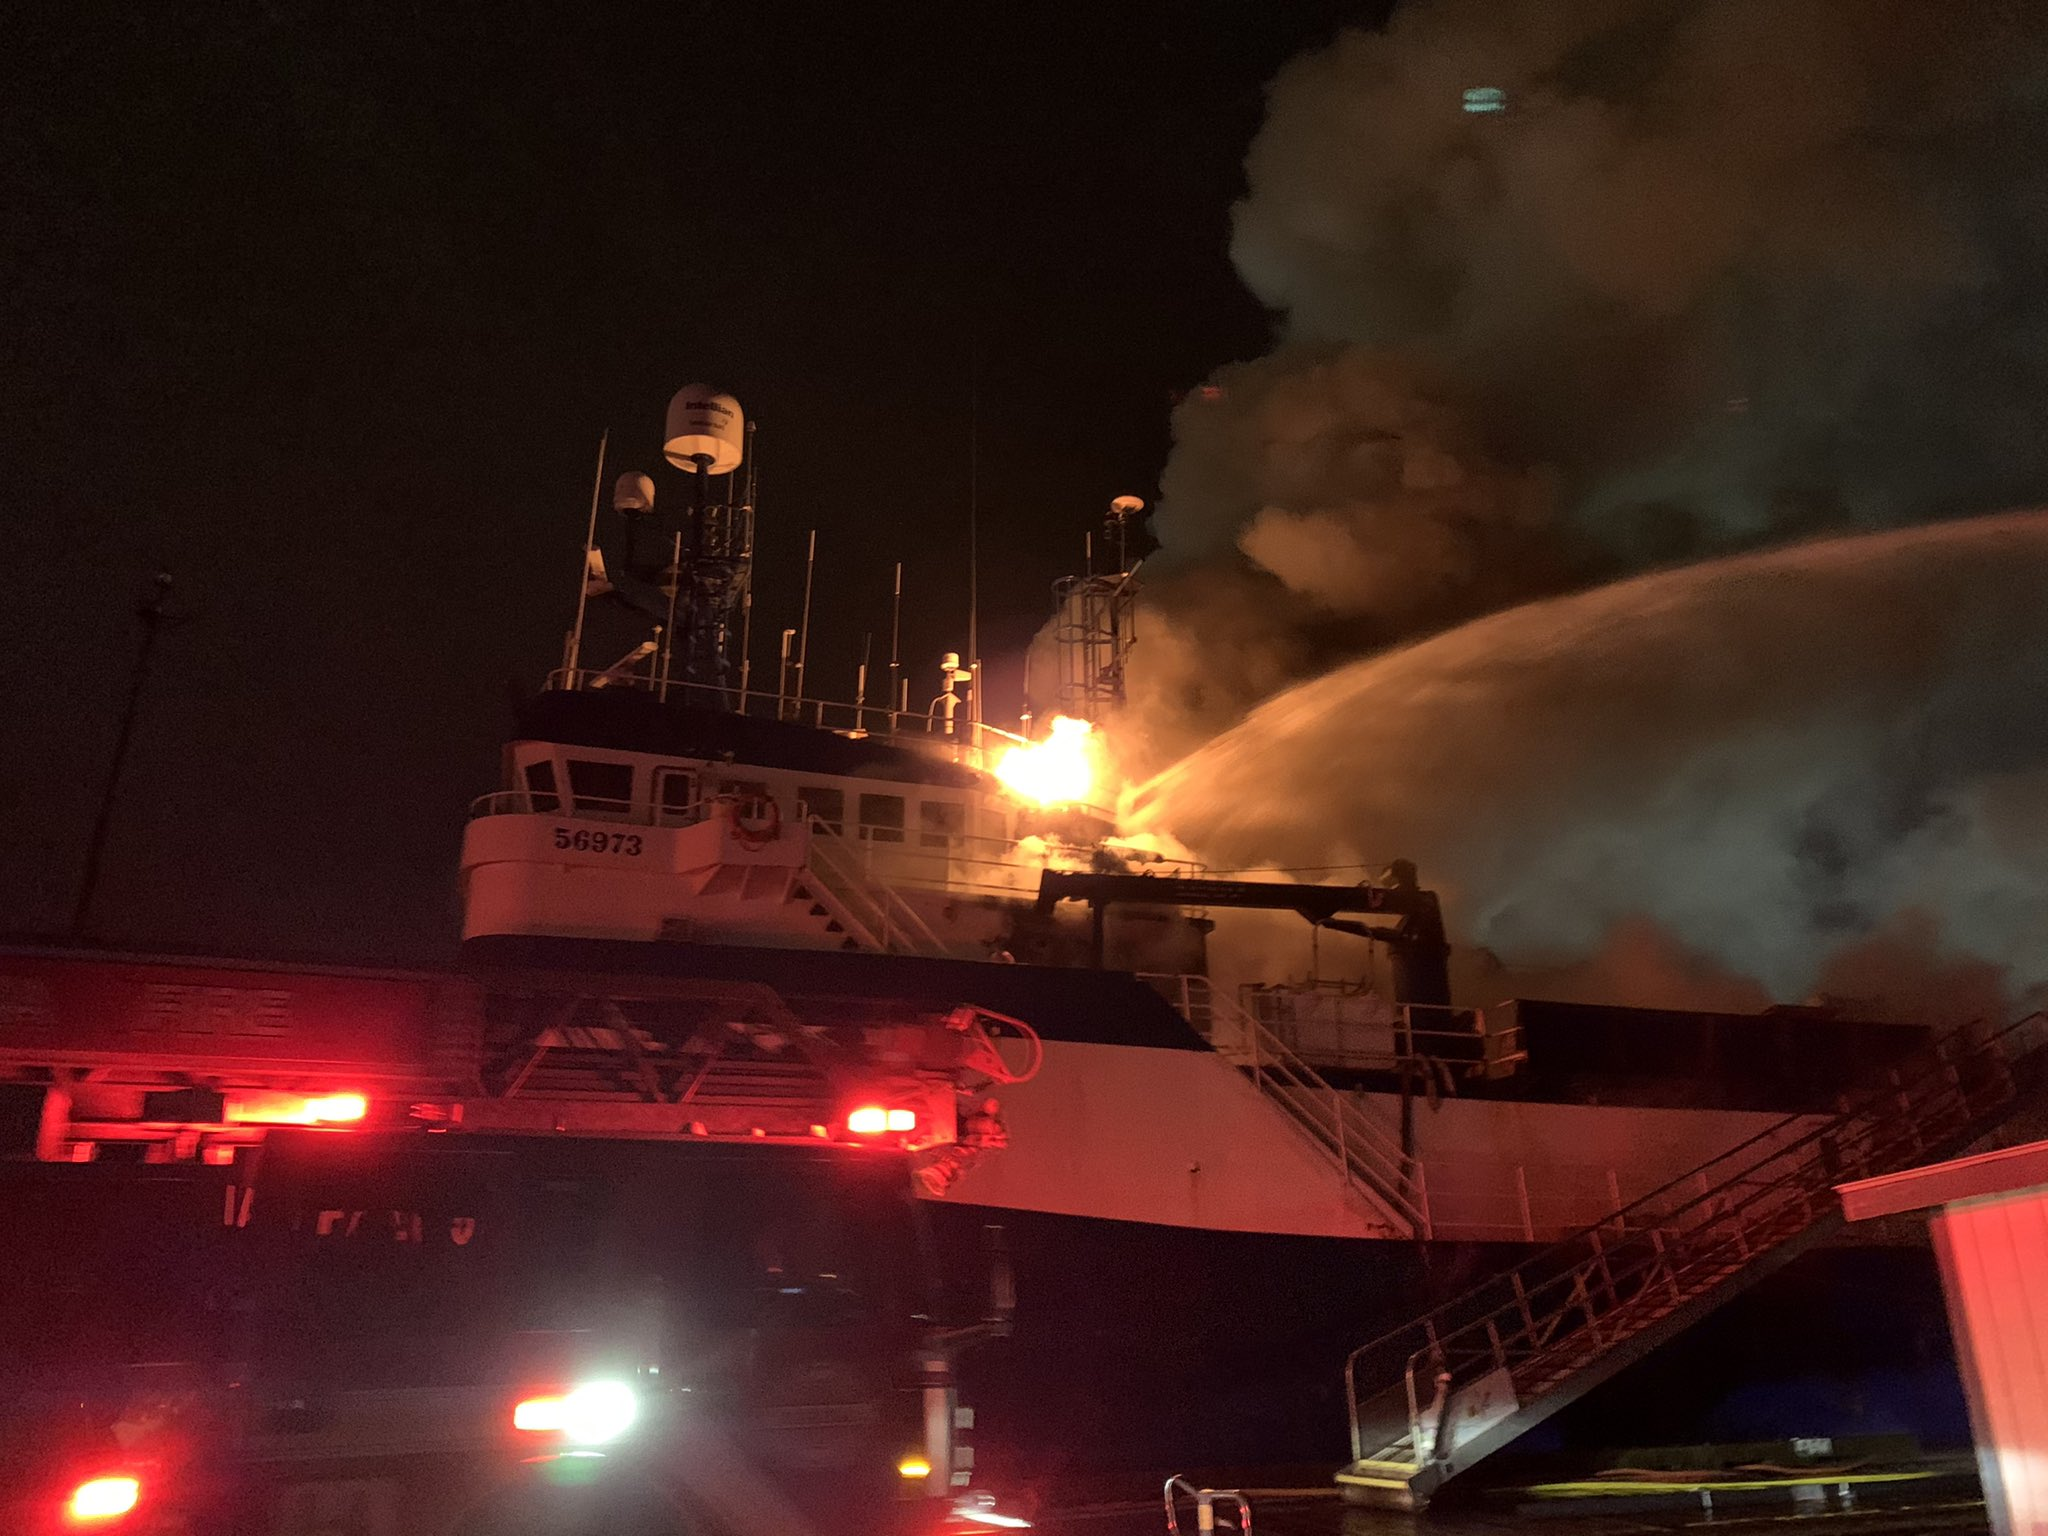 PHOTOS: Firefighters Battle Large Fire on Trident Floating Processor the Aleutian Falcon